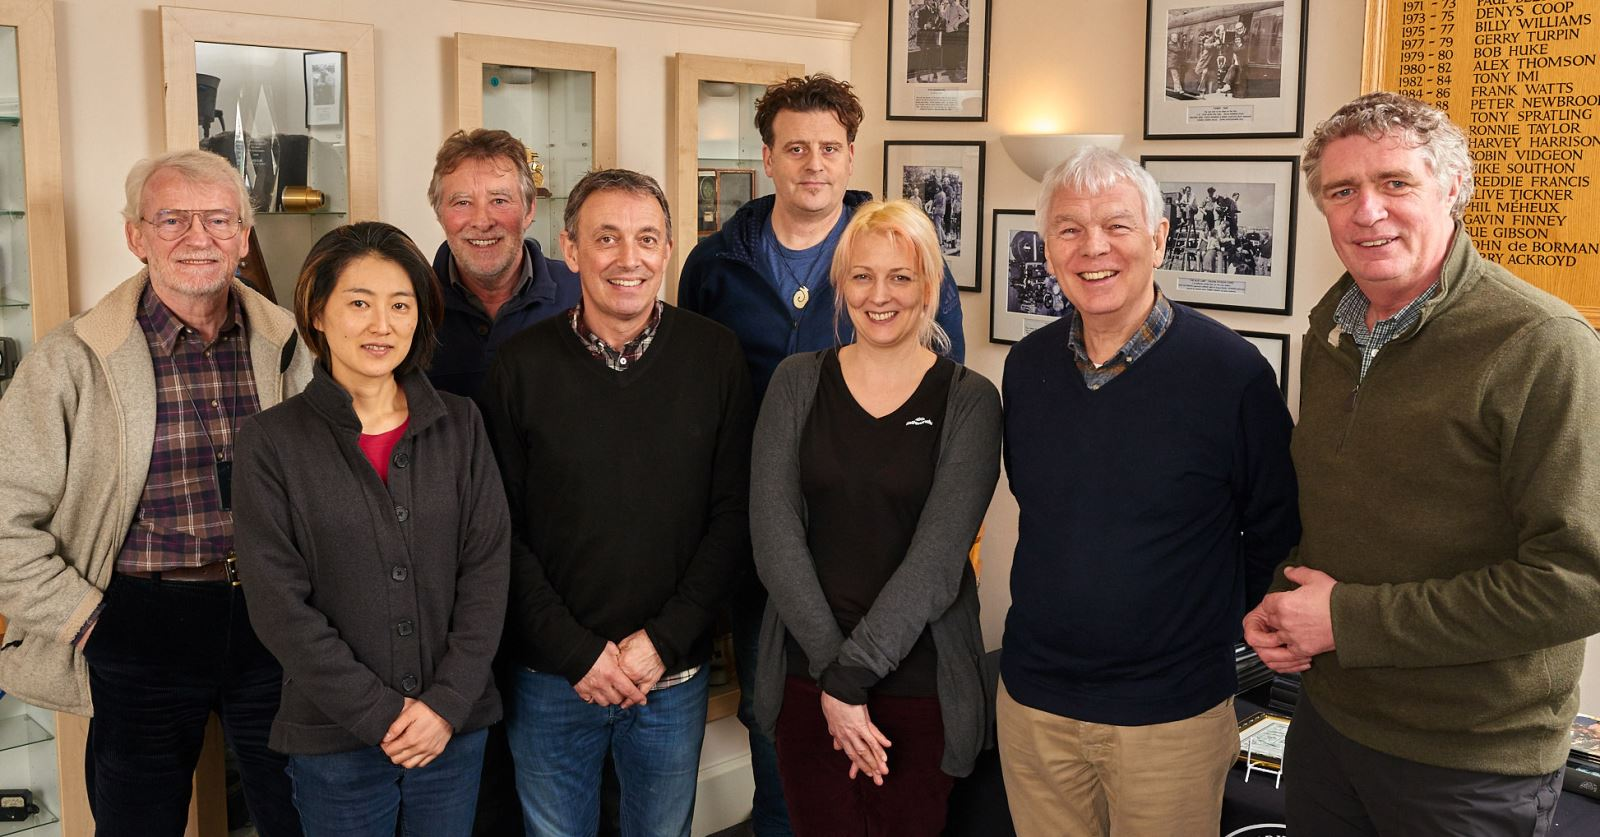 The GTC Awards 2017 judges met at Pinewood Studios on Sunday 12 March